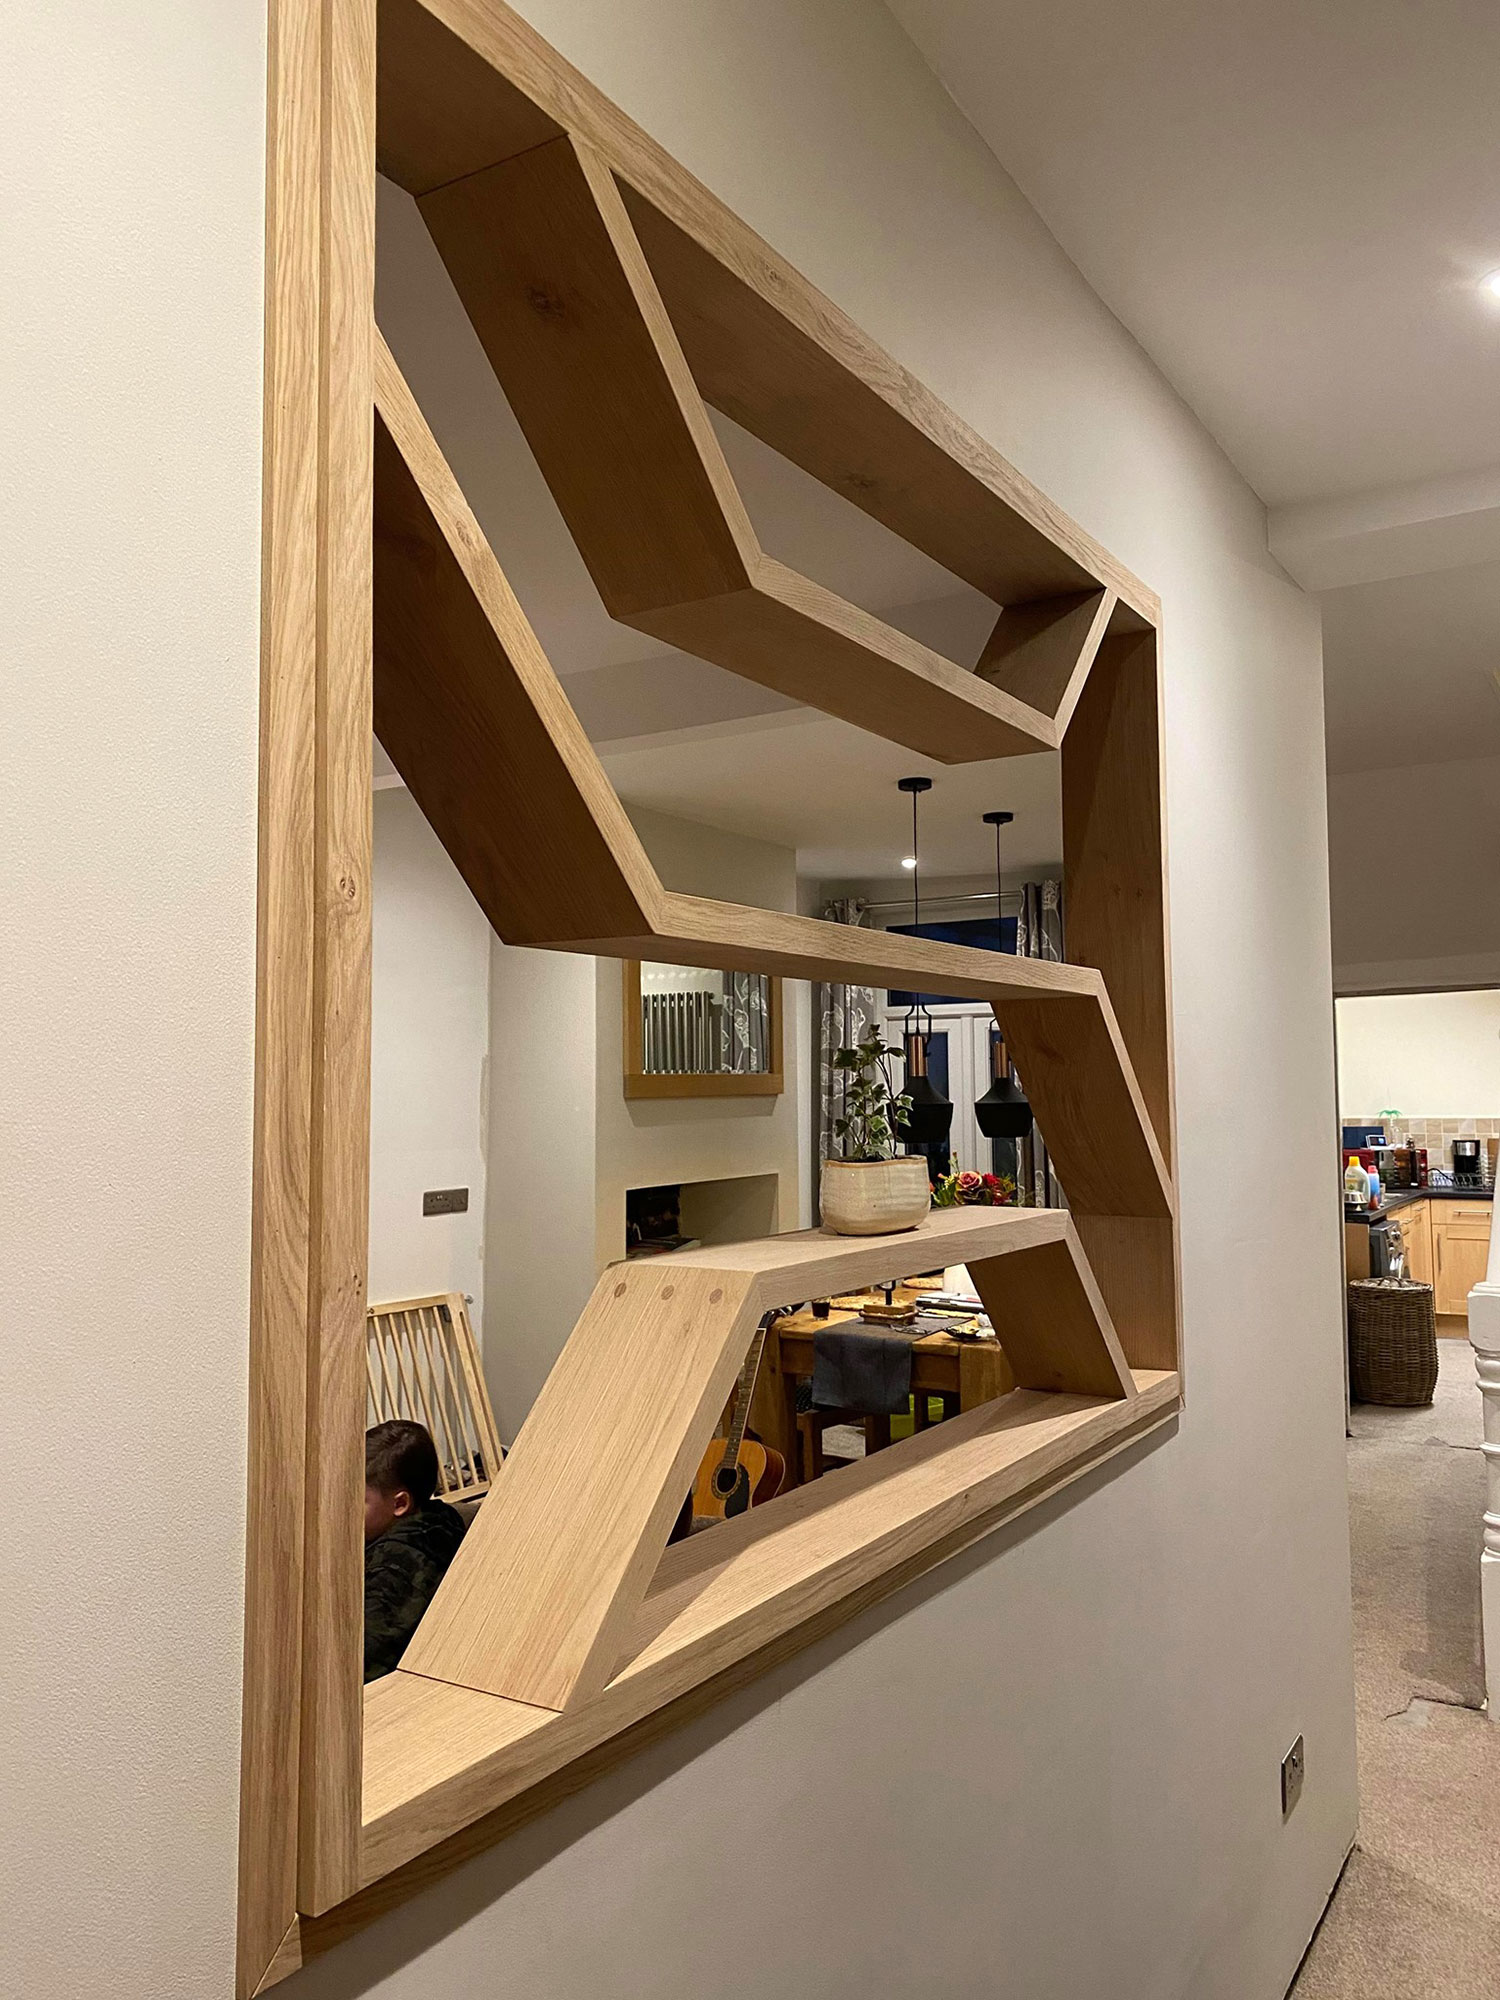 Double sided oak shelves